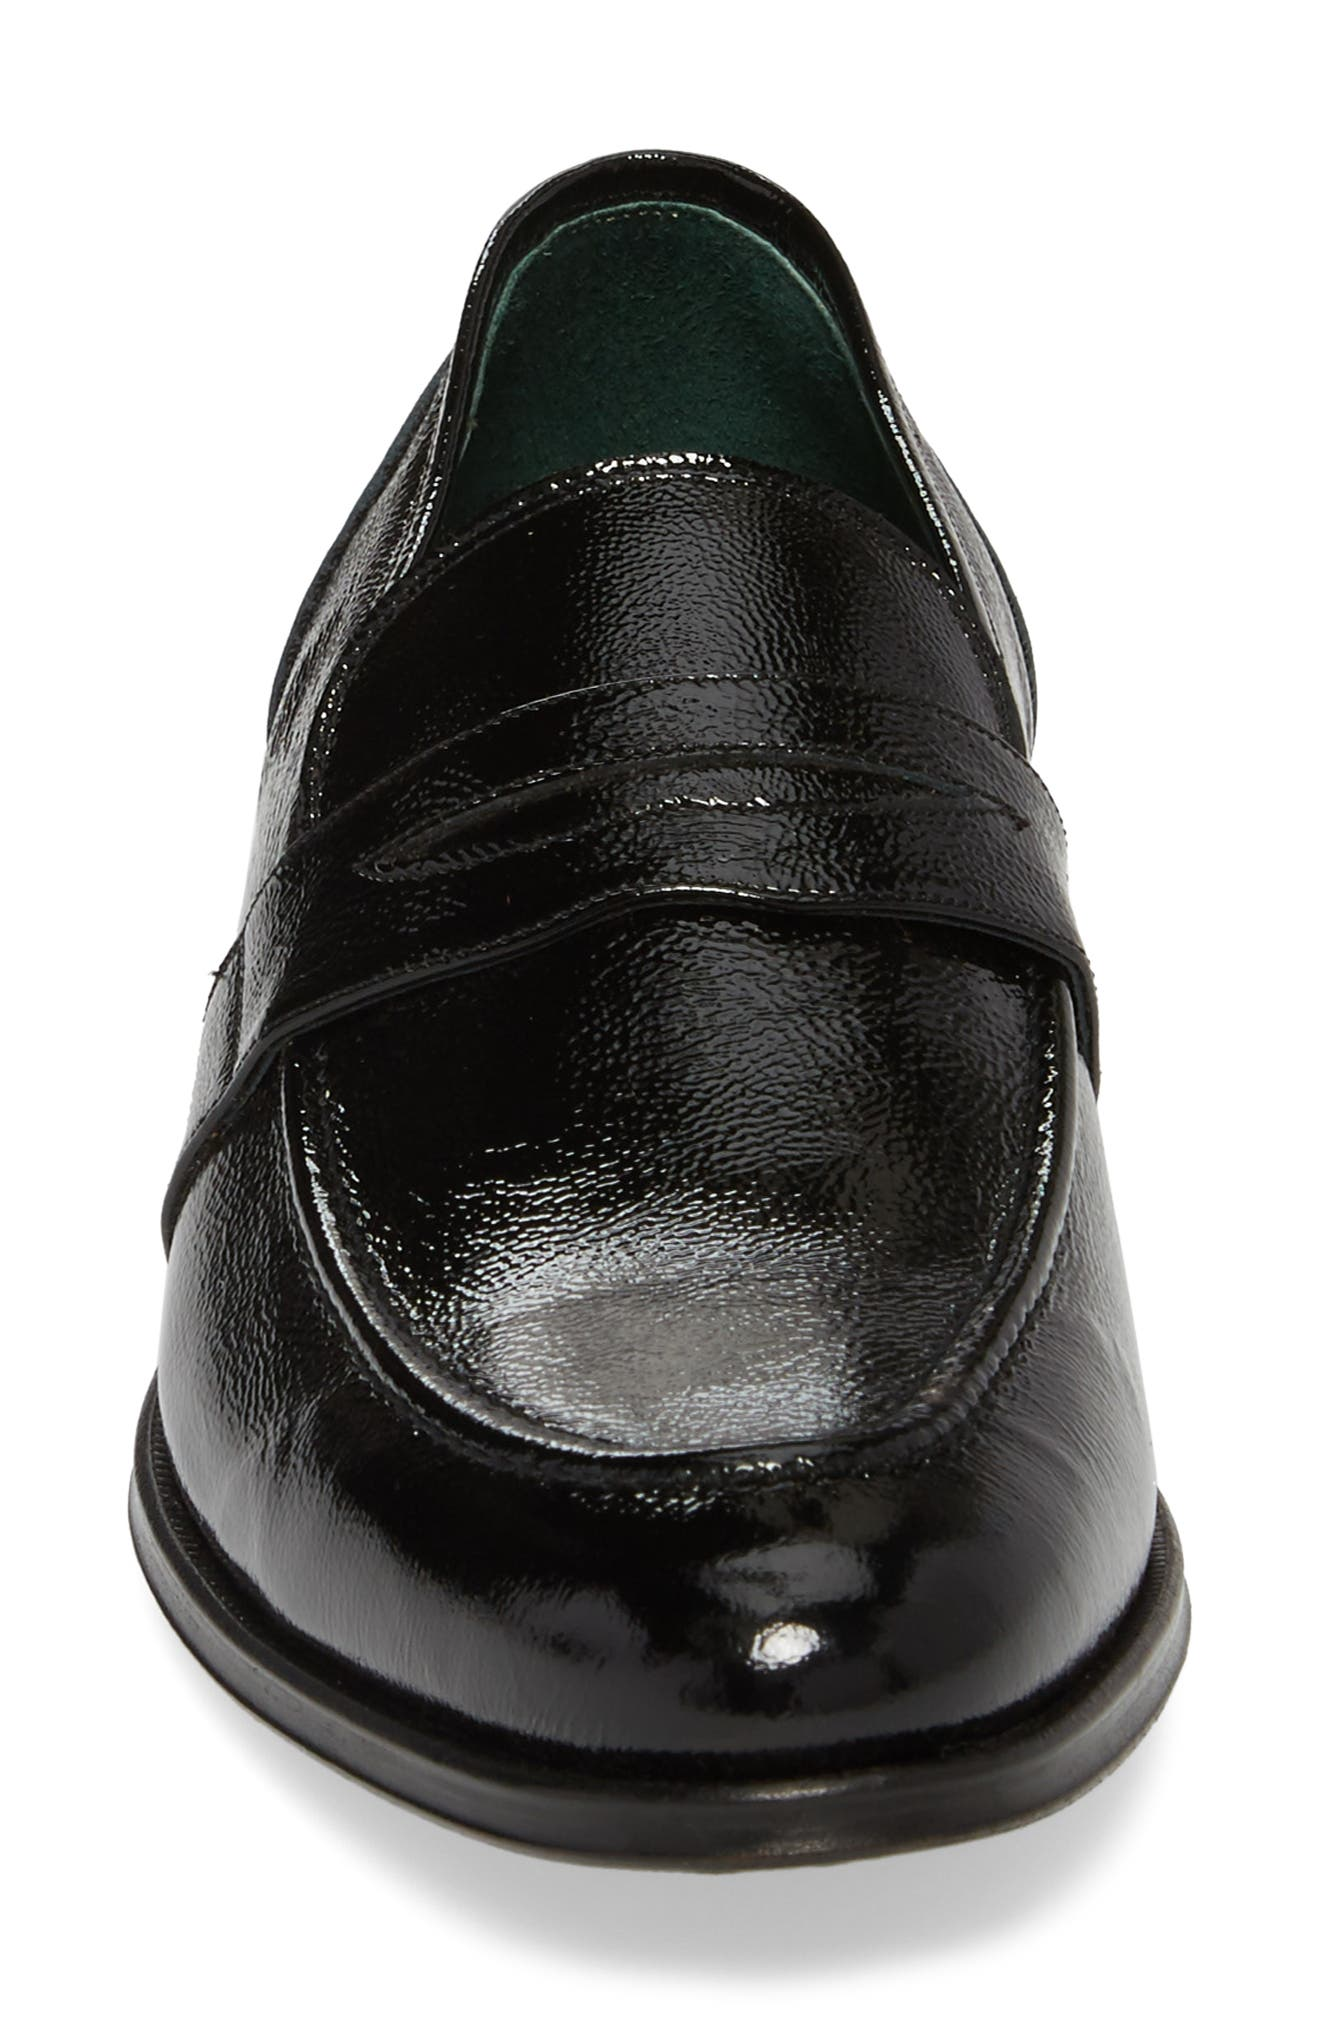 Argos Penny Loafer,                             Alternate thumbnail 4, color,                             Black Patent Leather